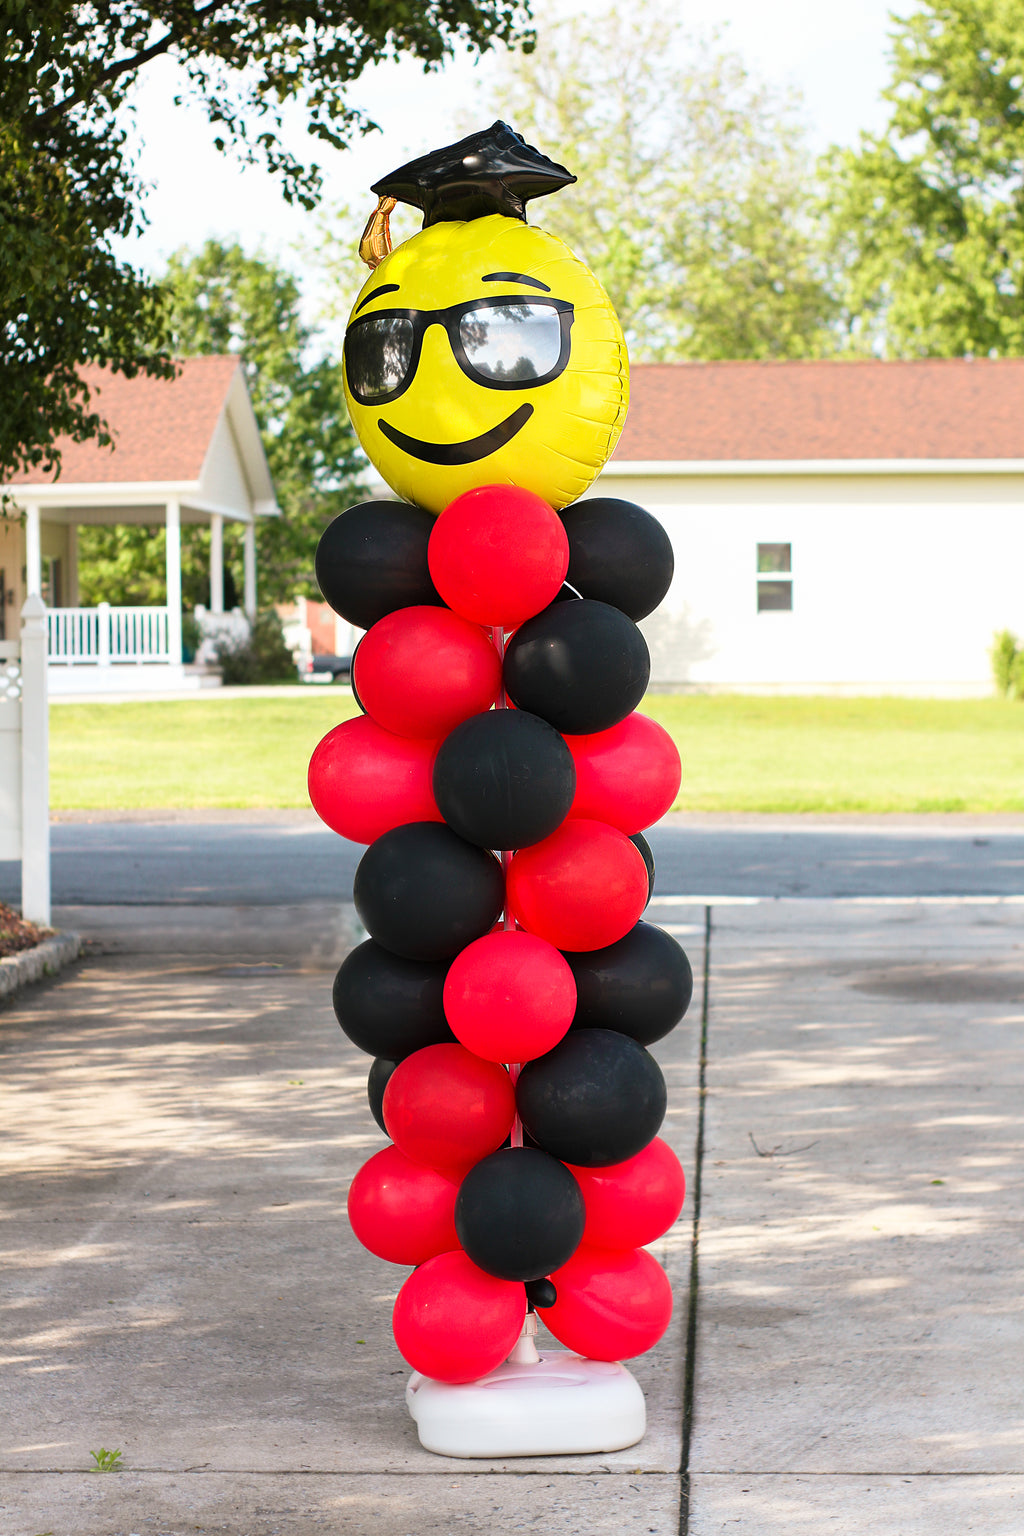 Pillars of Balloons